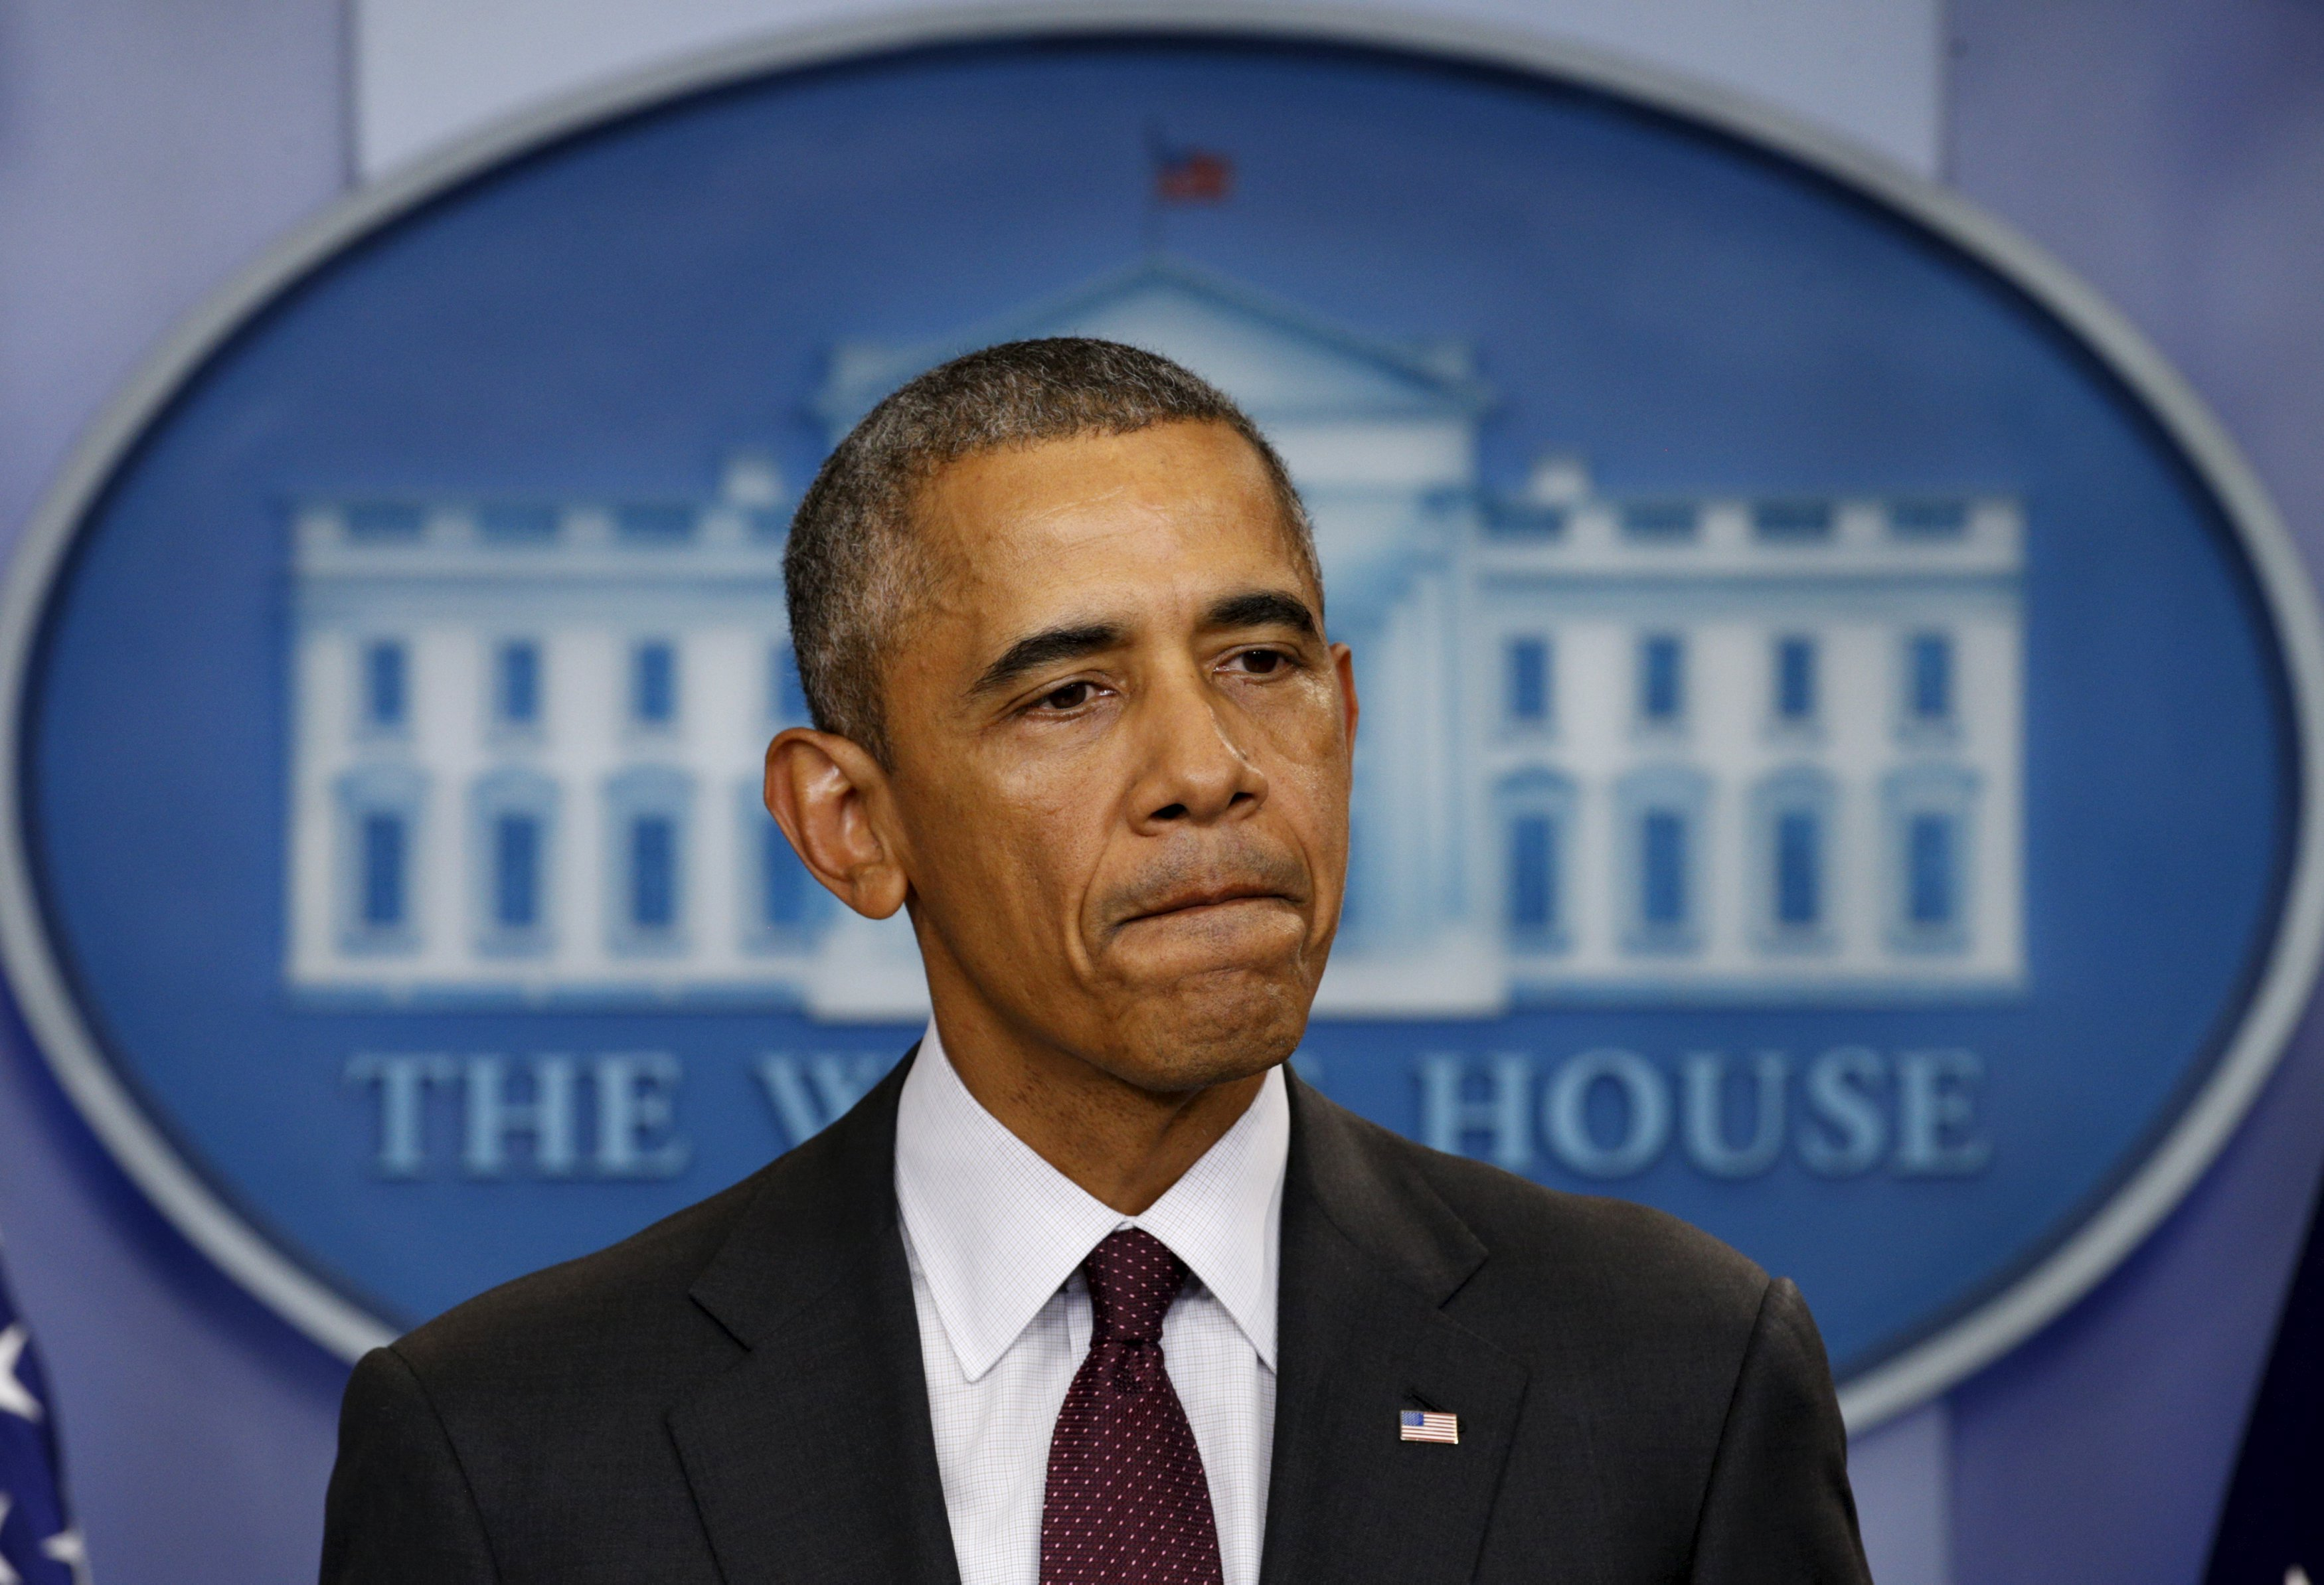 Obama to Meet With Families of Oregon College Victims